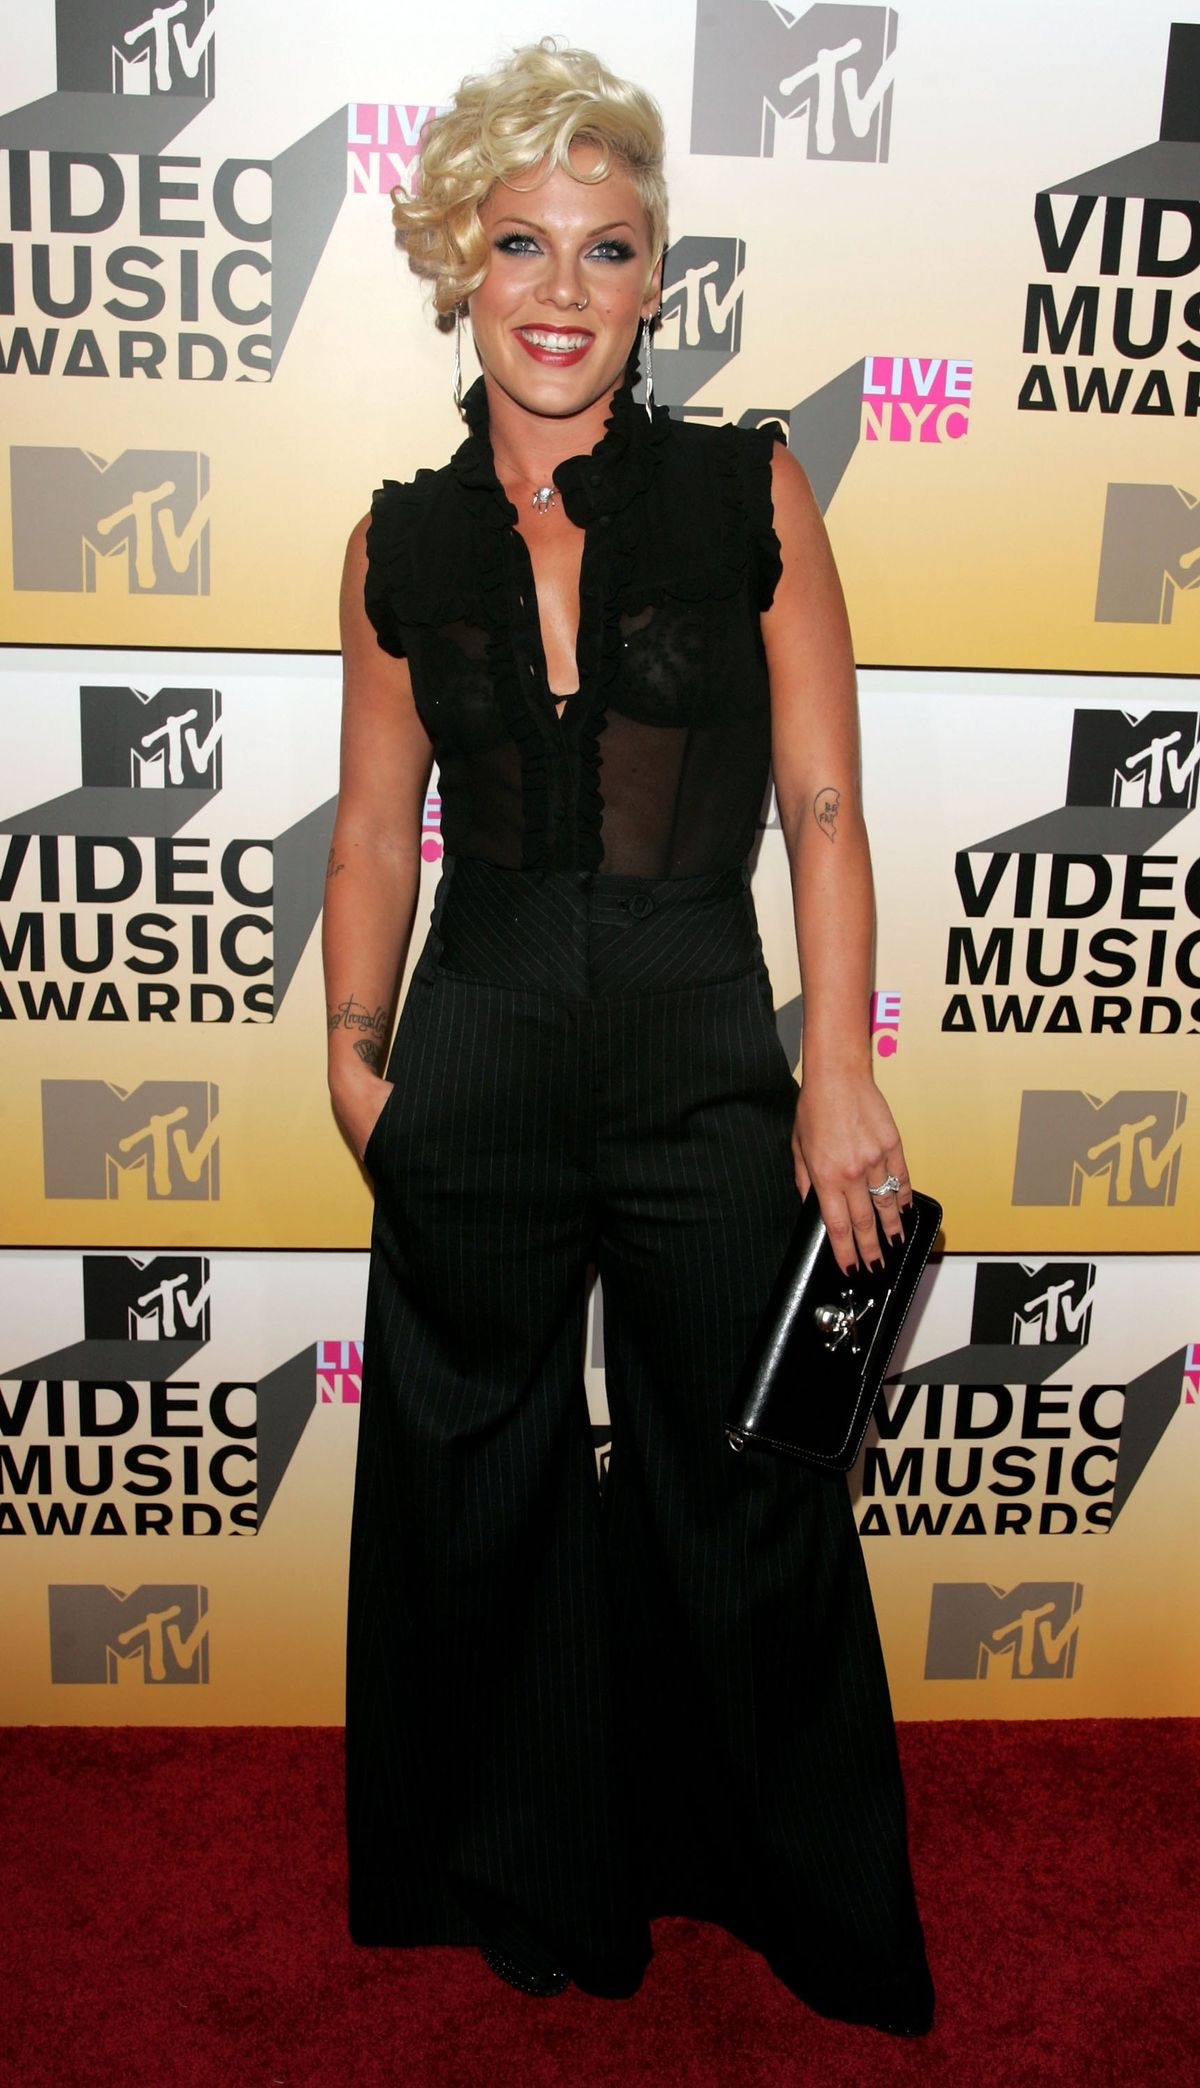 NEW YORK - AUGUST 31:  Singer Pink attends the 2006 MTV Video Music Awards at Radio City Music Hall August 31, 2006 in New York City.  (Photo by Peter Kramer/Getty Images)